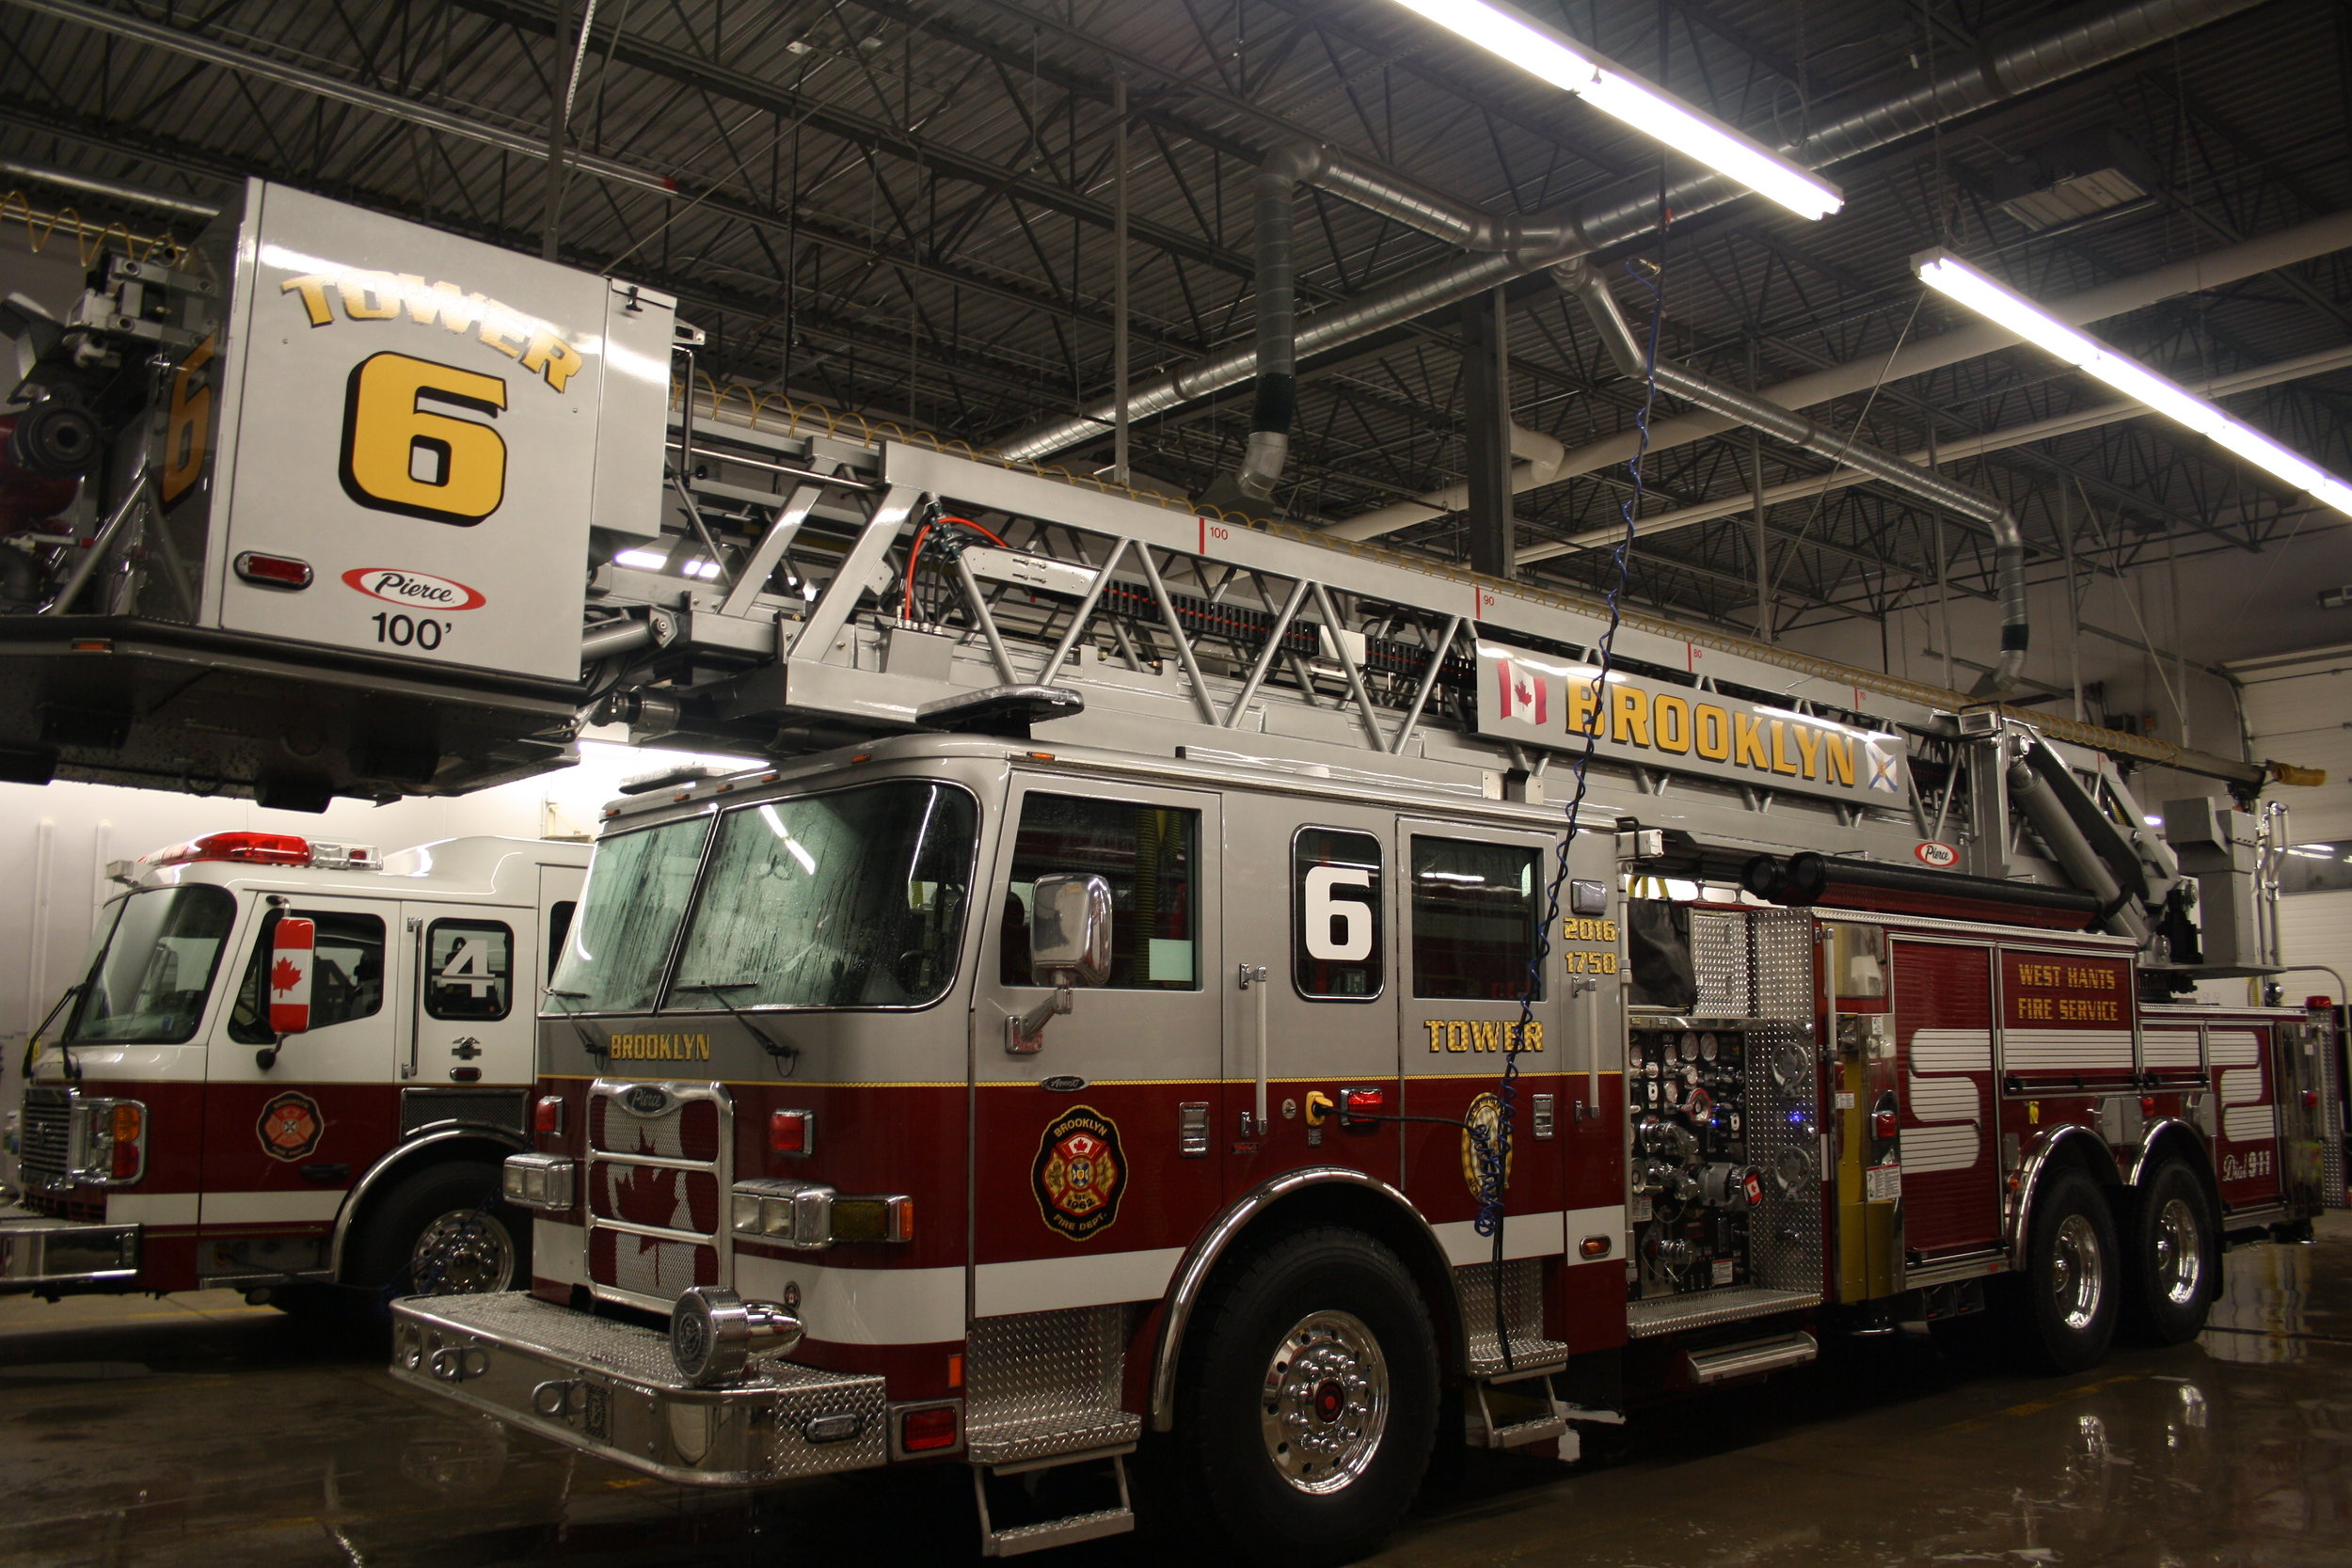 Tower Six is a 2016 Pierce 100' Aerial. It has a 1750 GPM Pump, and carries 300 gallons of water on board and also has Tak four suspension